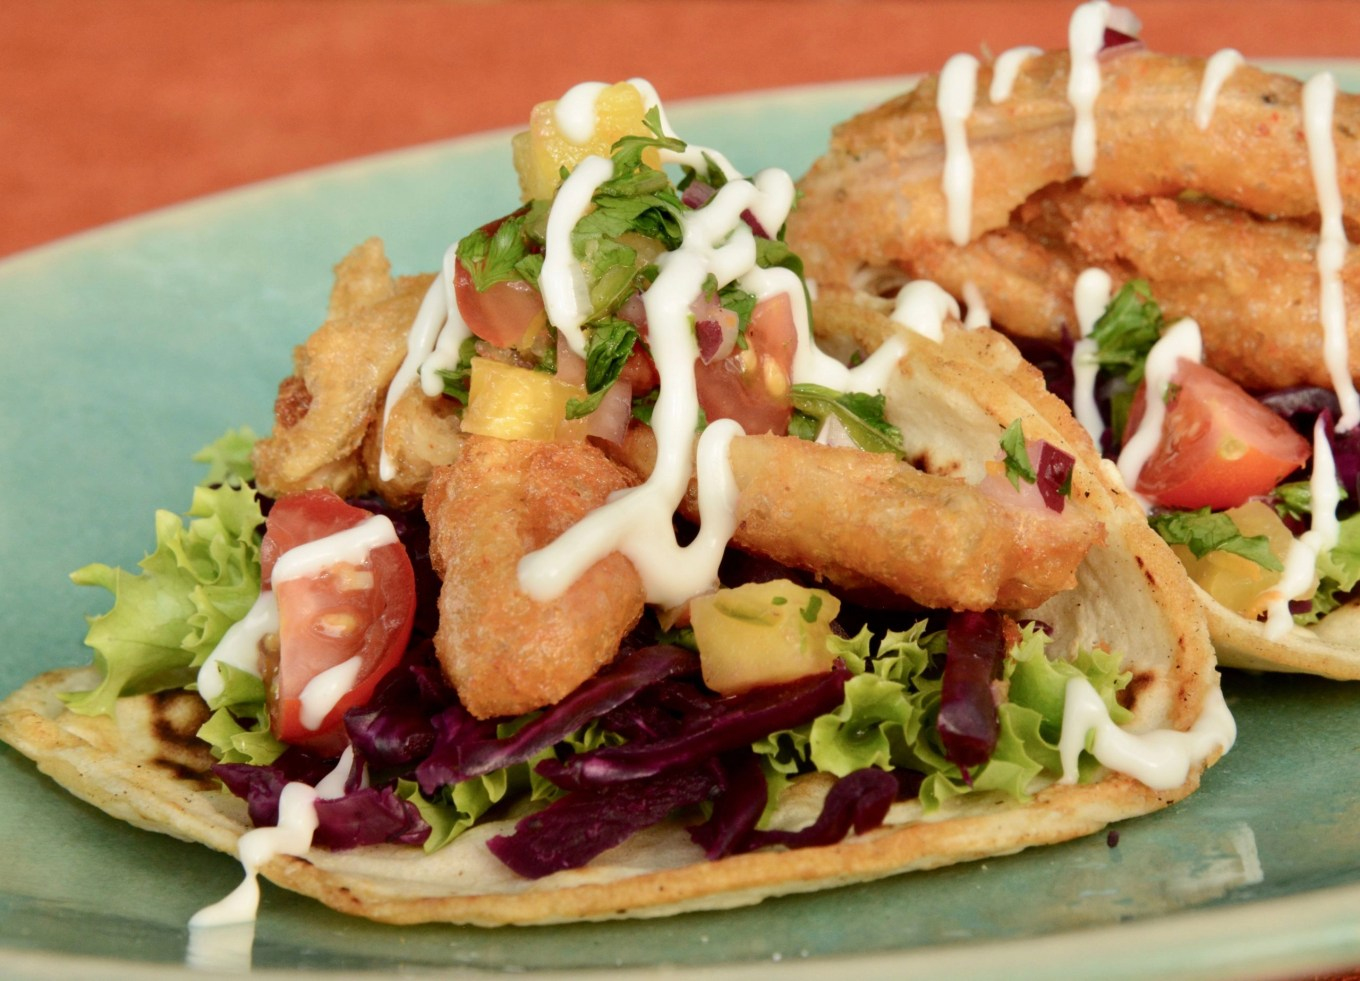 Plate of crispy battered Baja Fish(less) Tacos drizzled with lime mayo